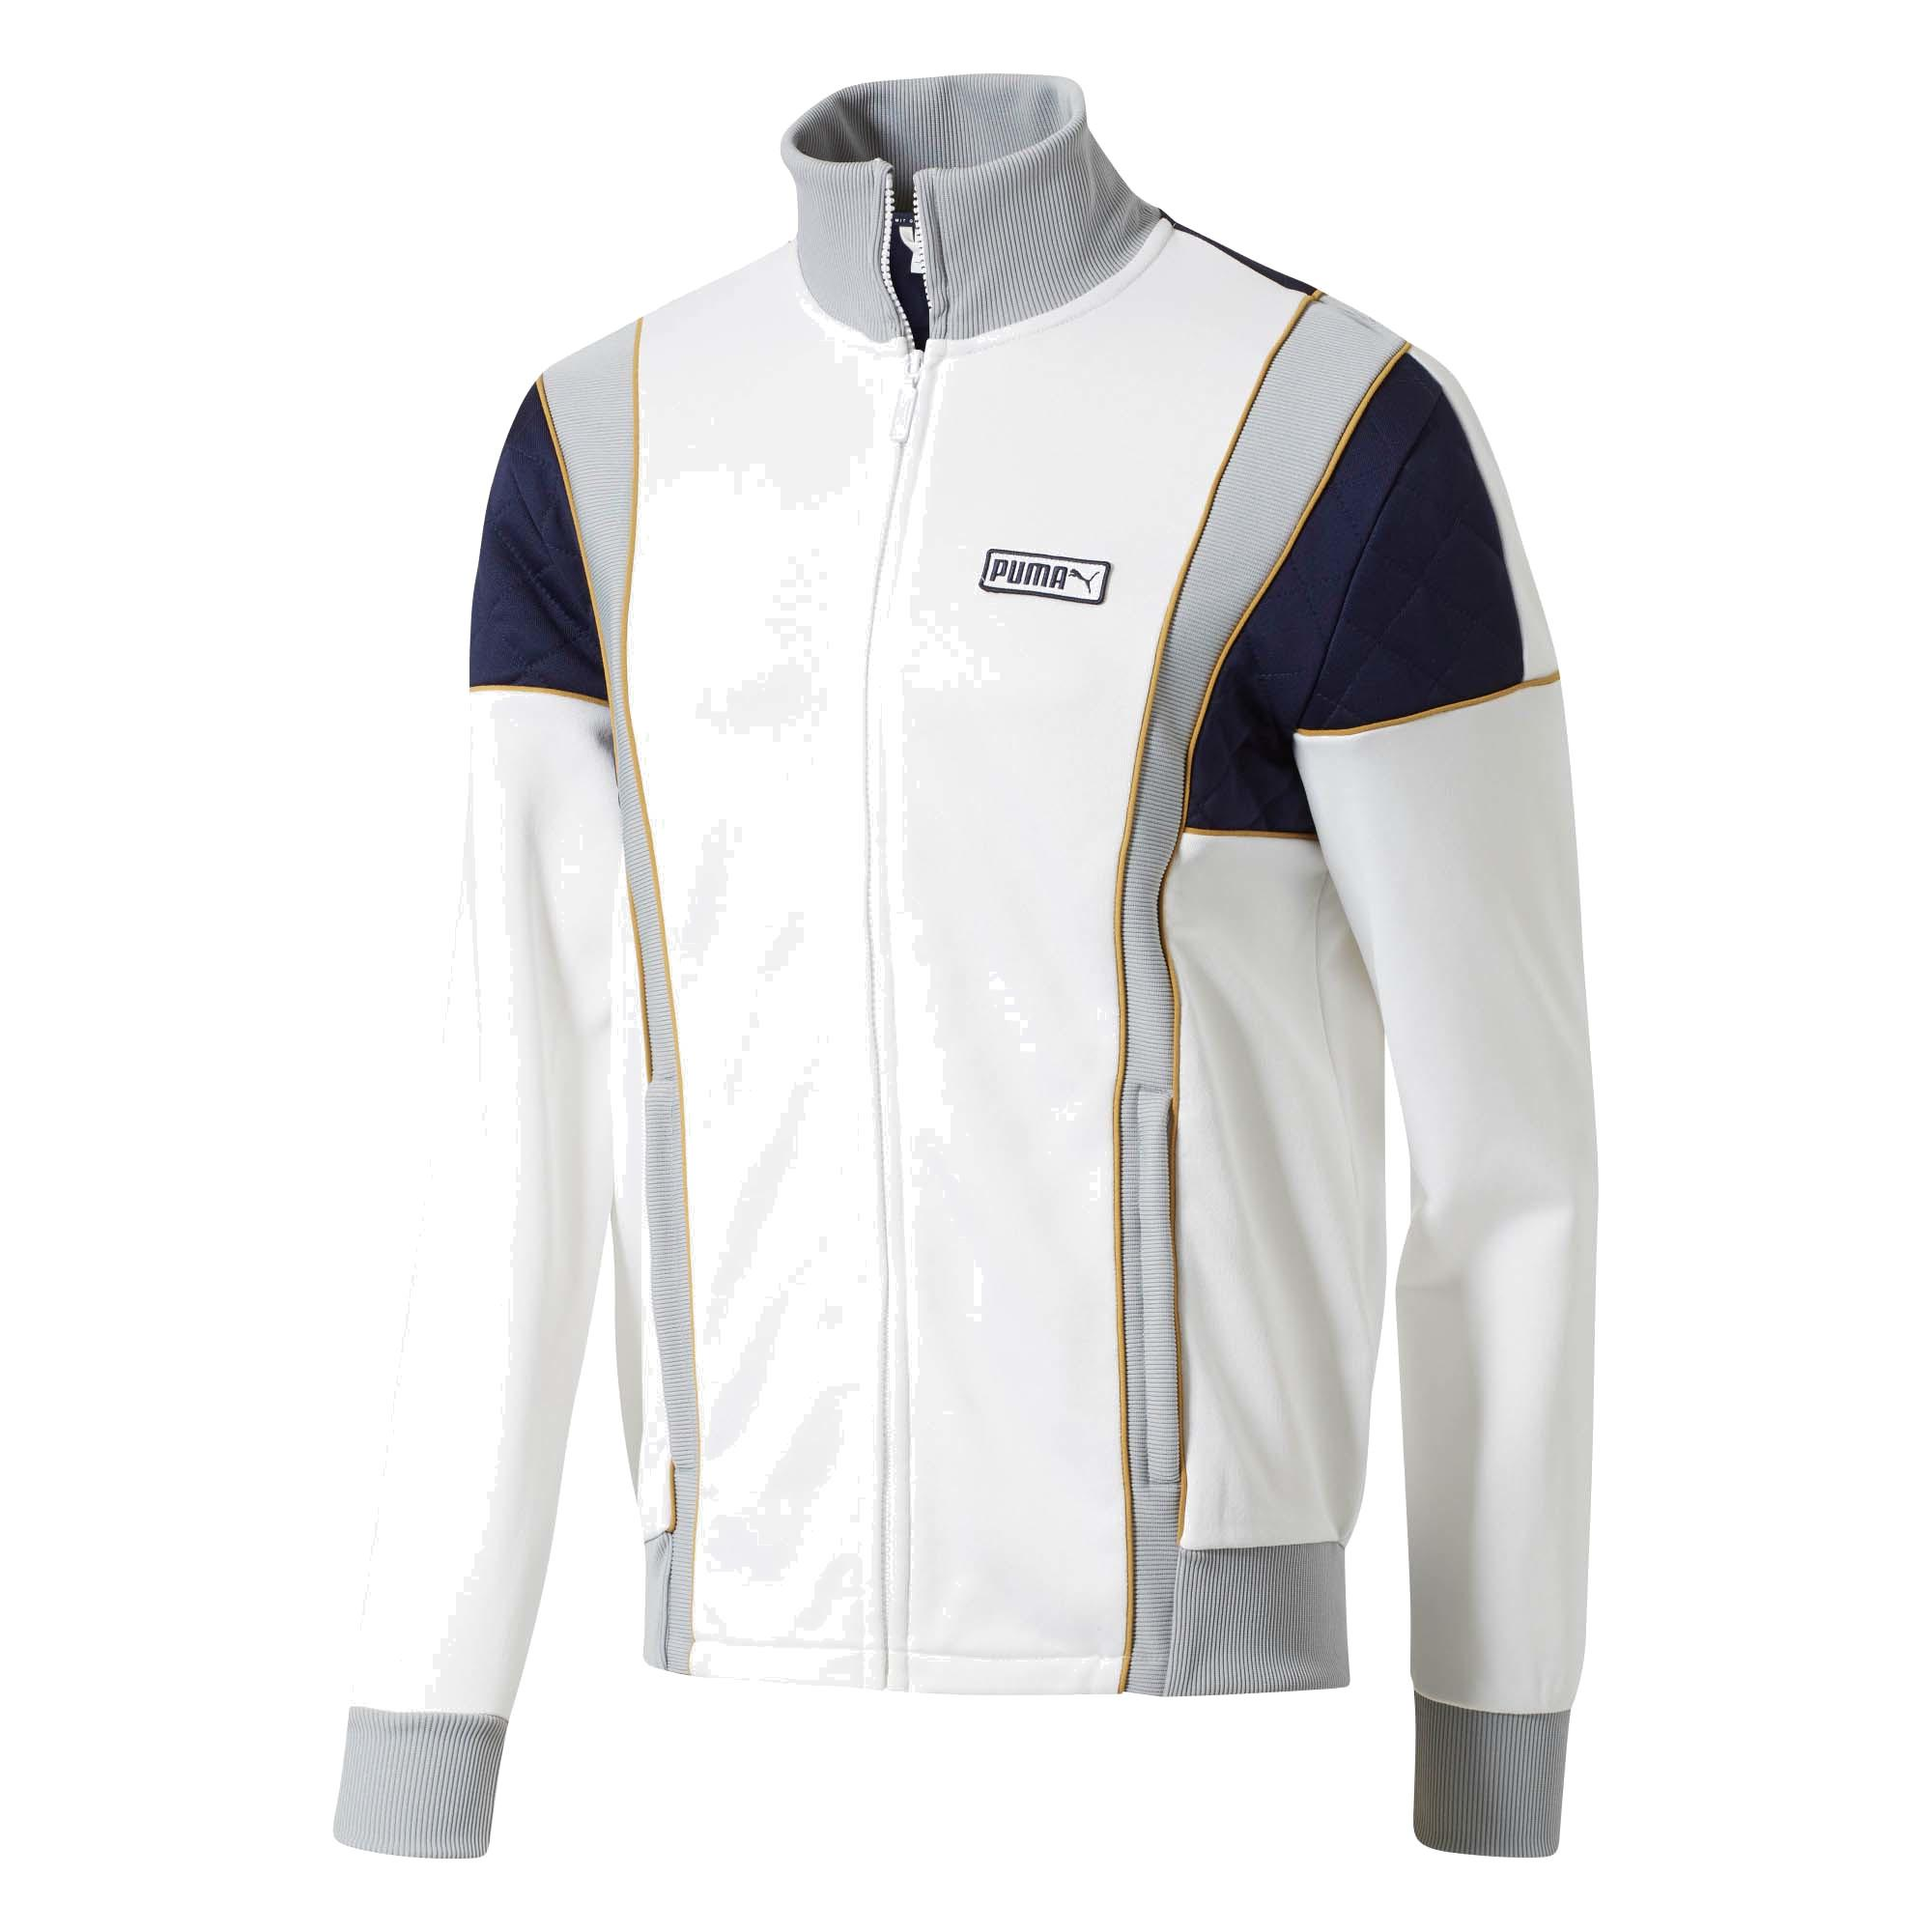 be7e0148850c Lyst - PUMA Lux Spezial Track Jacket for Men